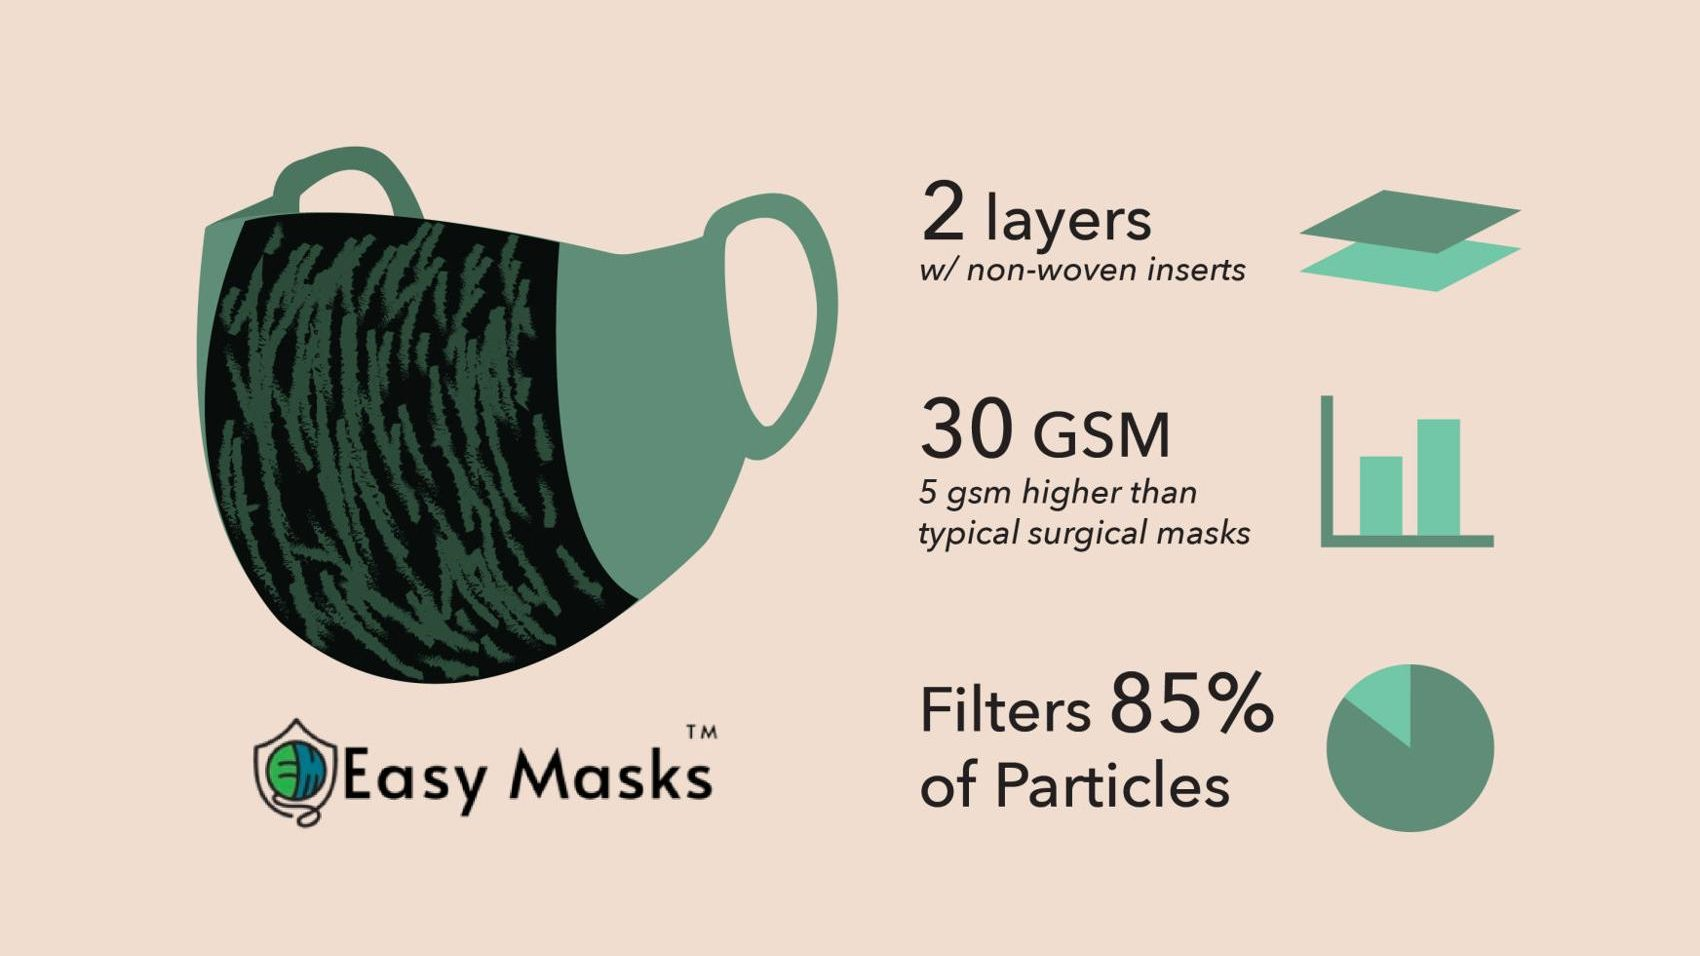 An Easy Mask is made of two layers of fabric with non-woven inserts and filters 85% of particles, according to this infographic.